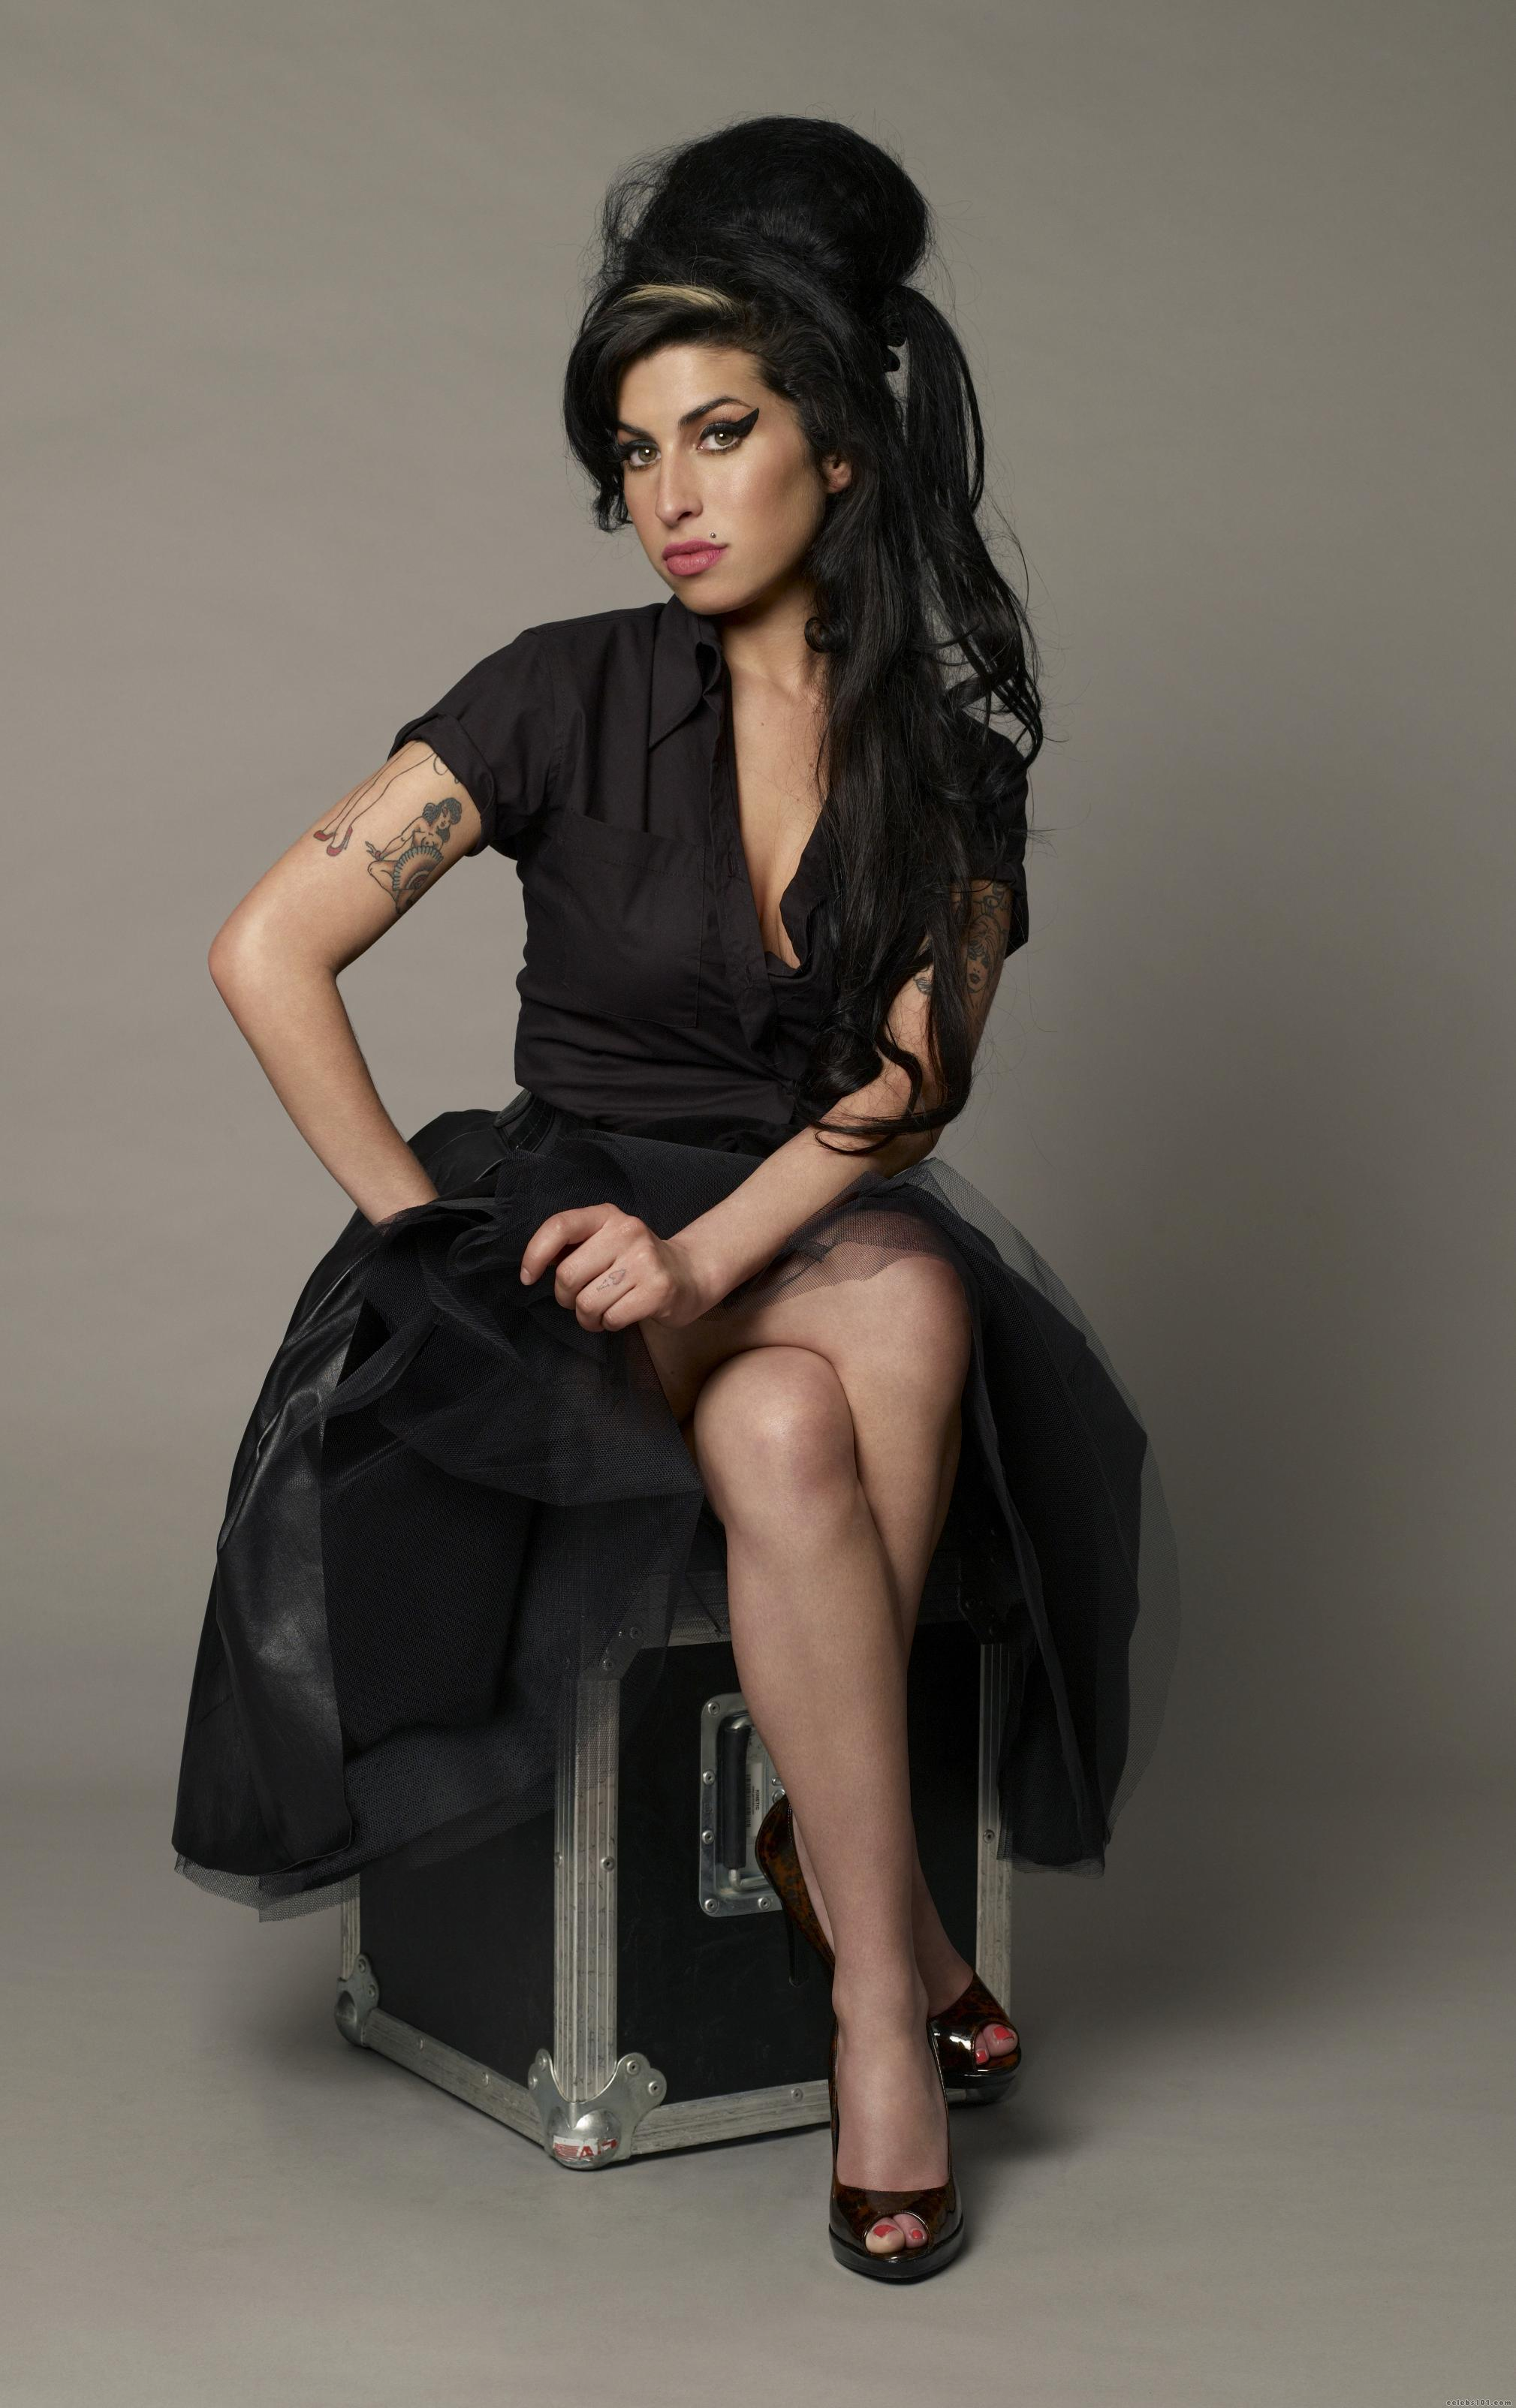 http://www.celebs101.com/gallery/Amy_Winehouse/204437/Amy_Winehouse_11.jpg